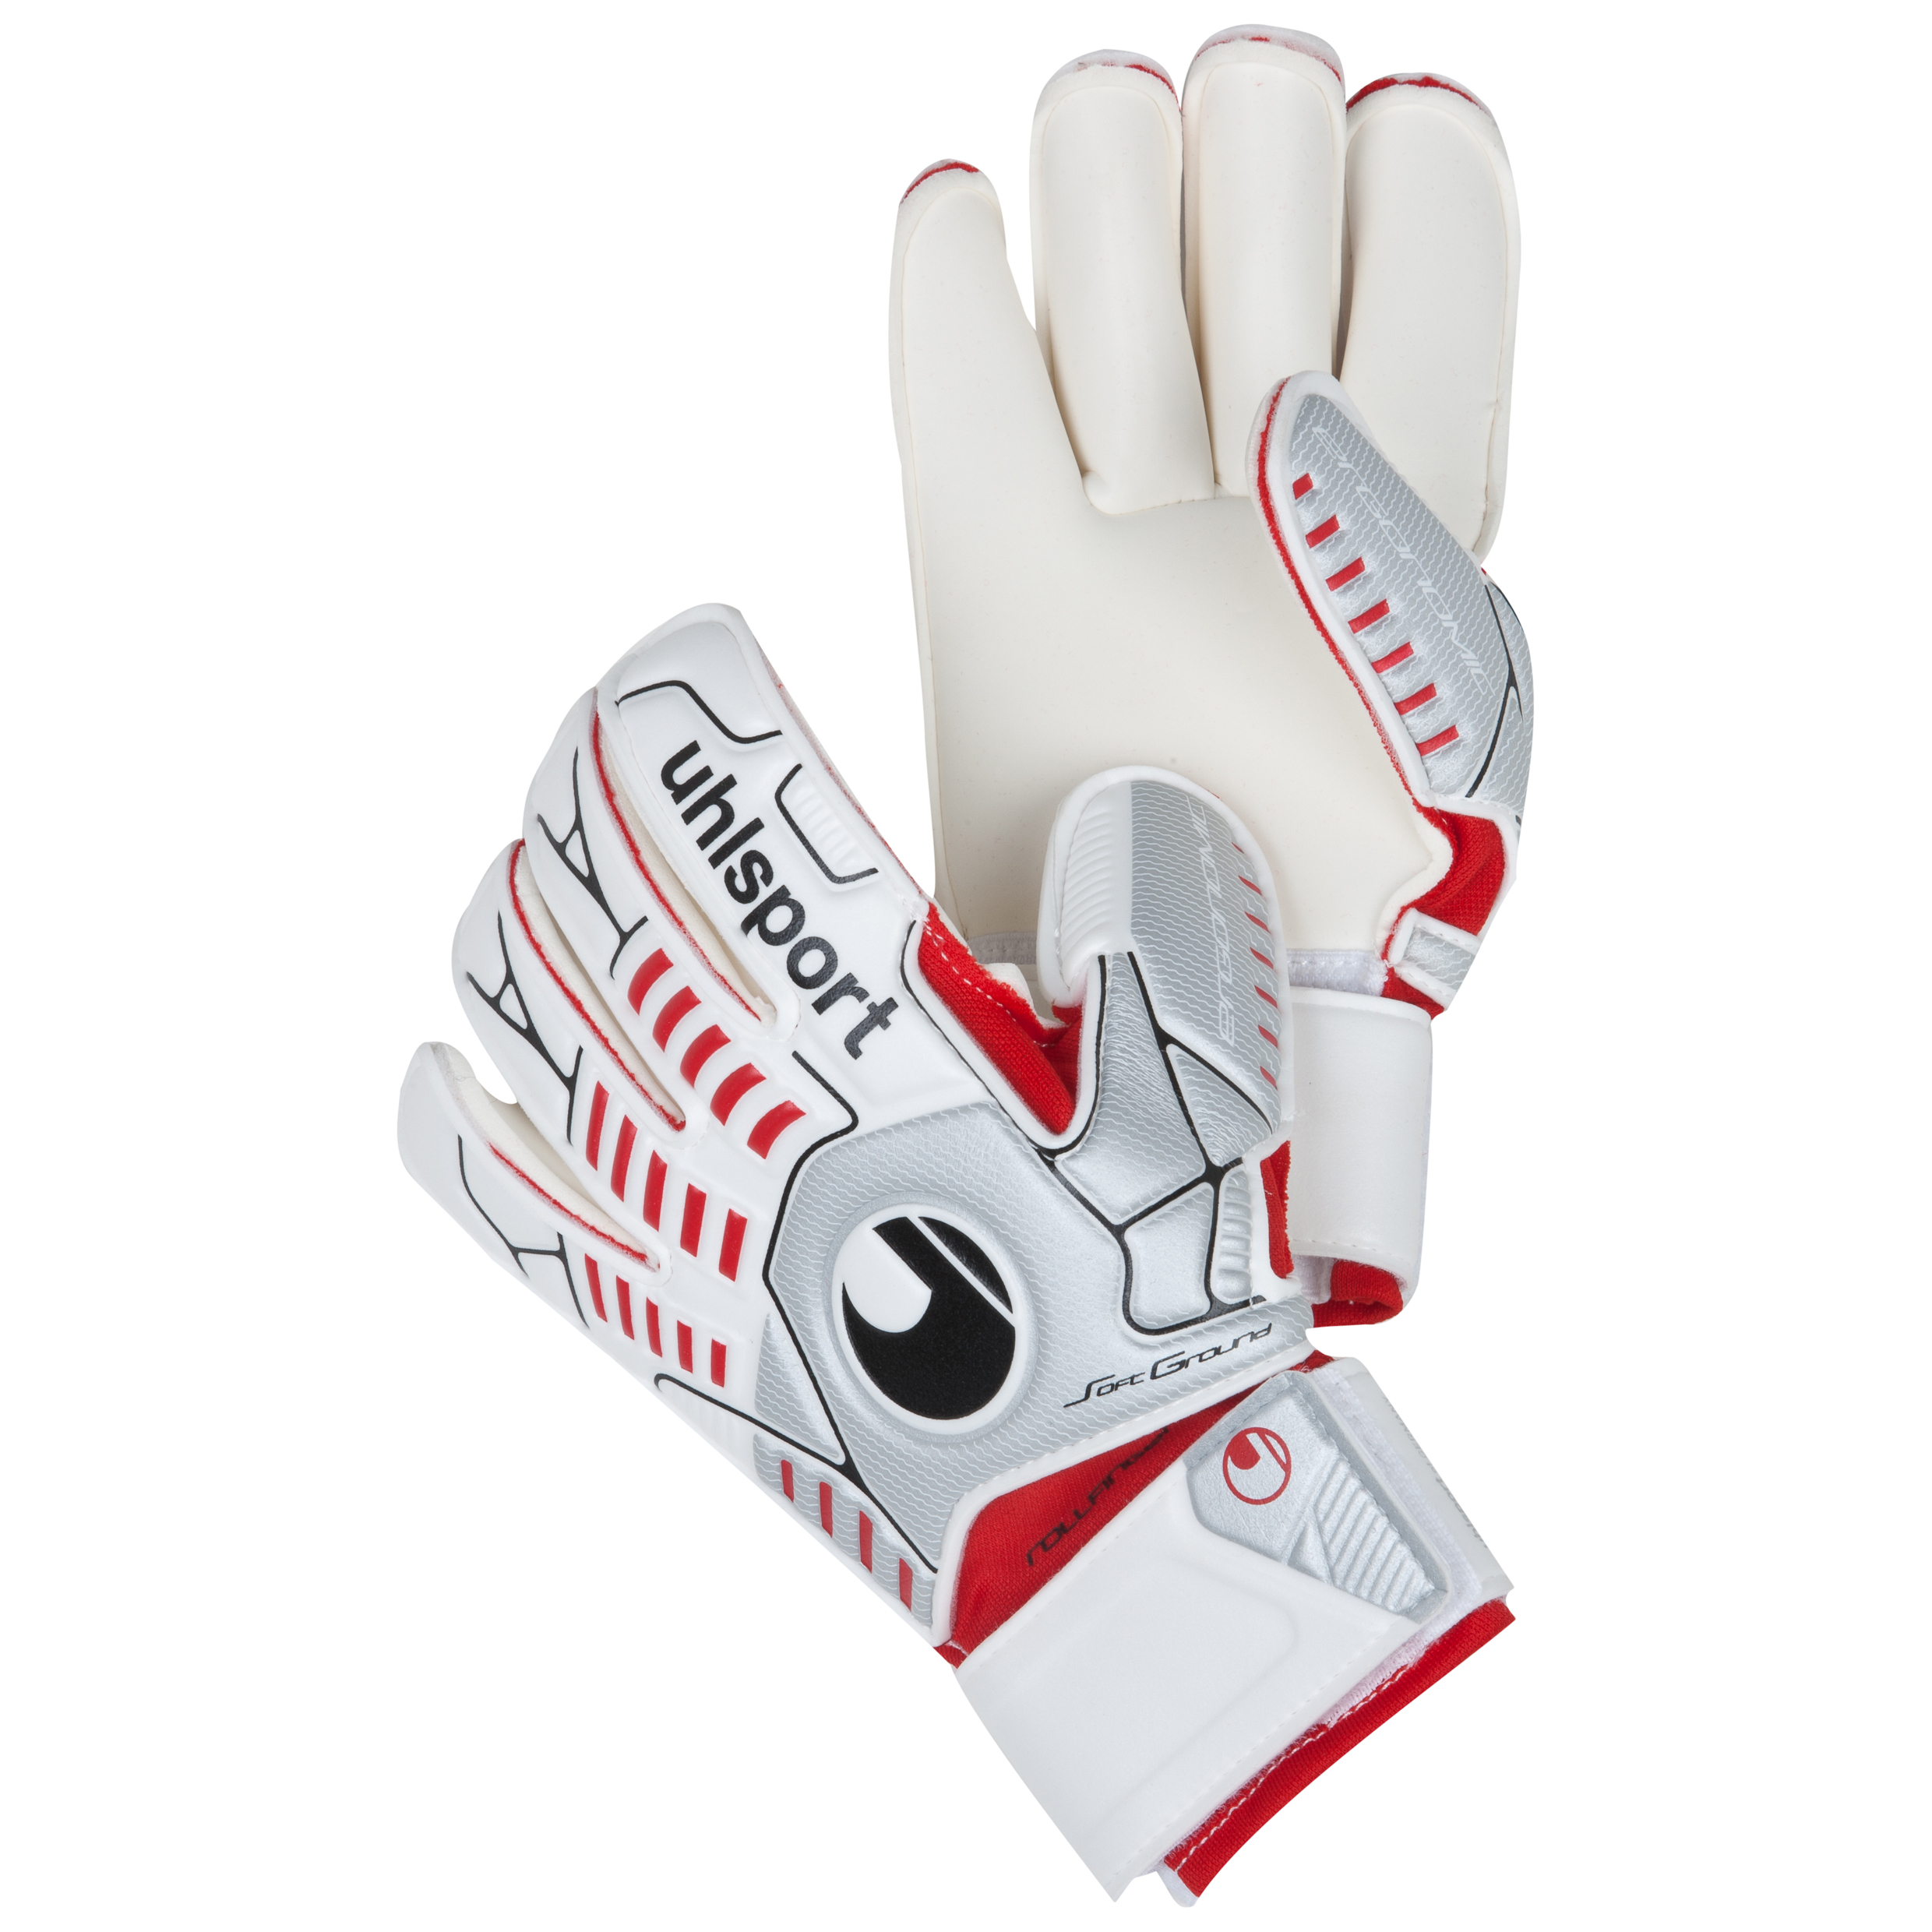 Uhlsport Ergonomic Soft Rollfinger Goalkeeper Gloves - White/Silver/Red - Kids